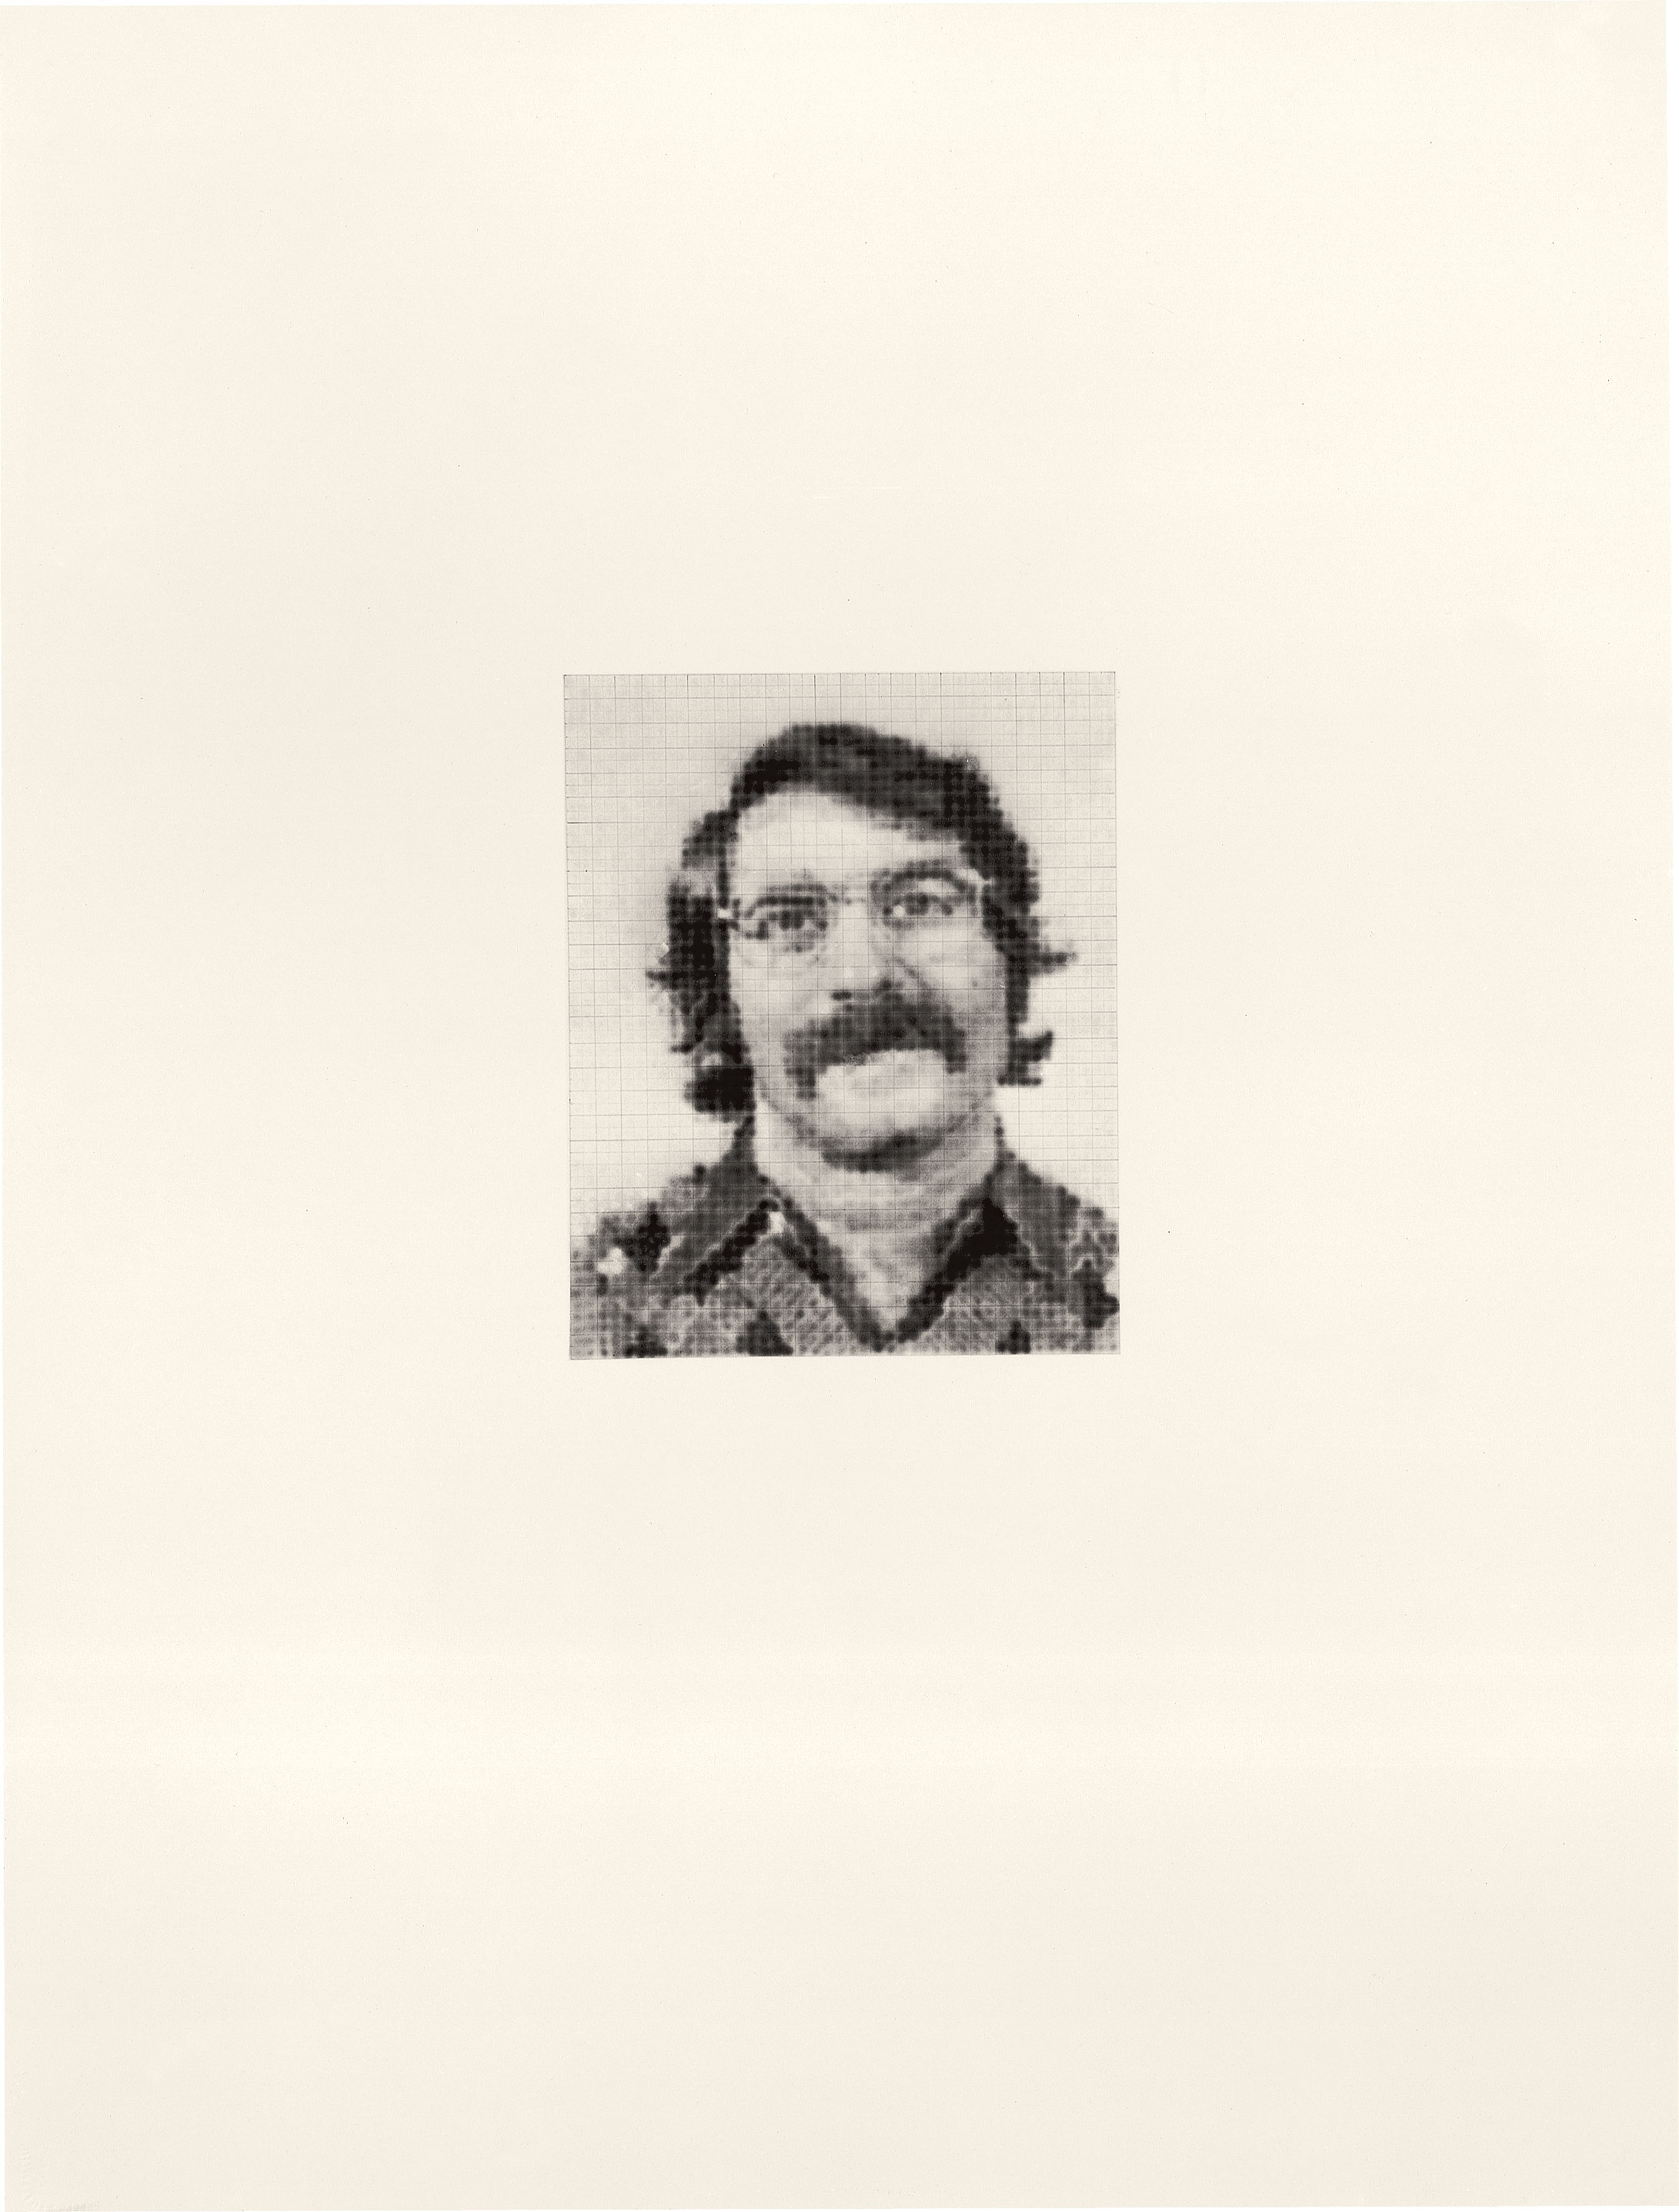 Robert lll/2.464, 1974; ink and graphite on paper (Photo © 1991 Fredrik Marsh)